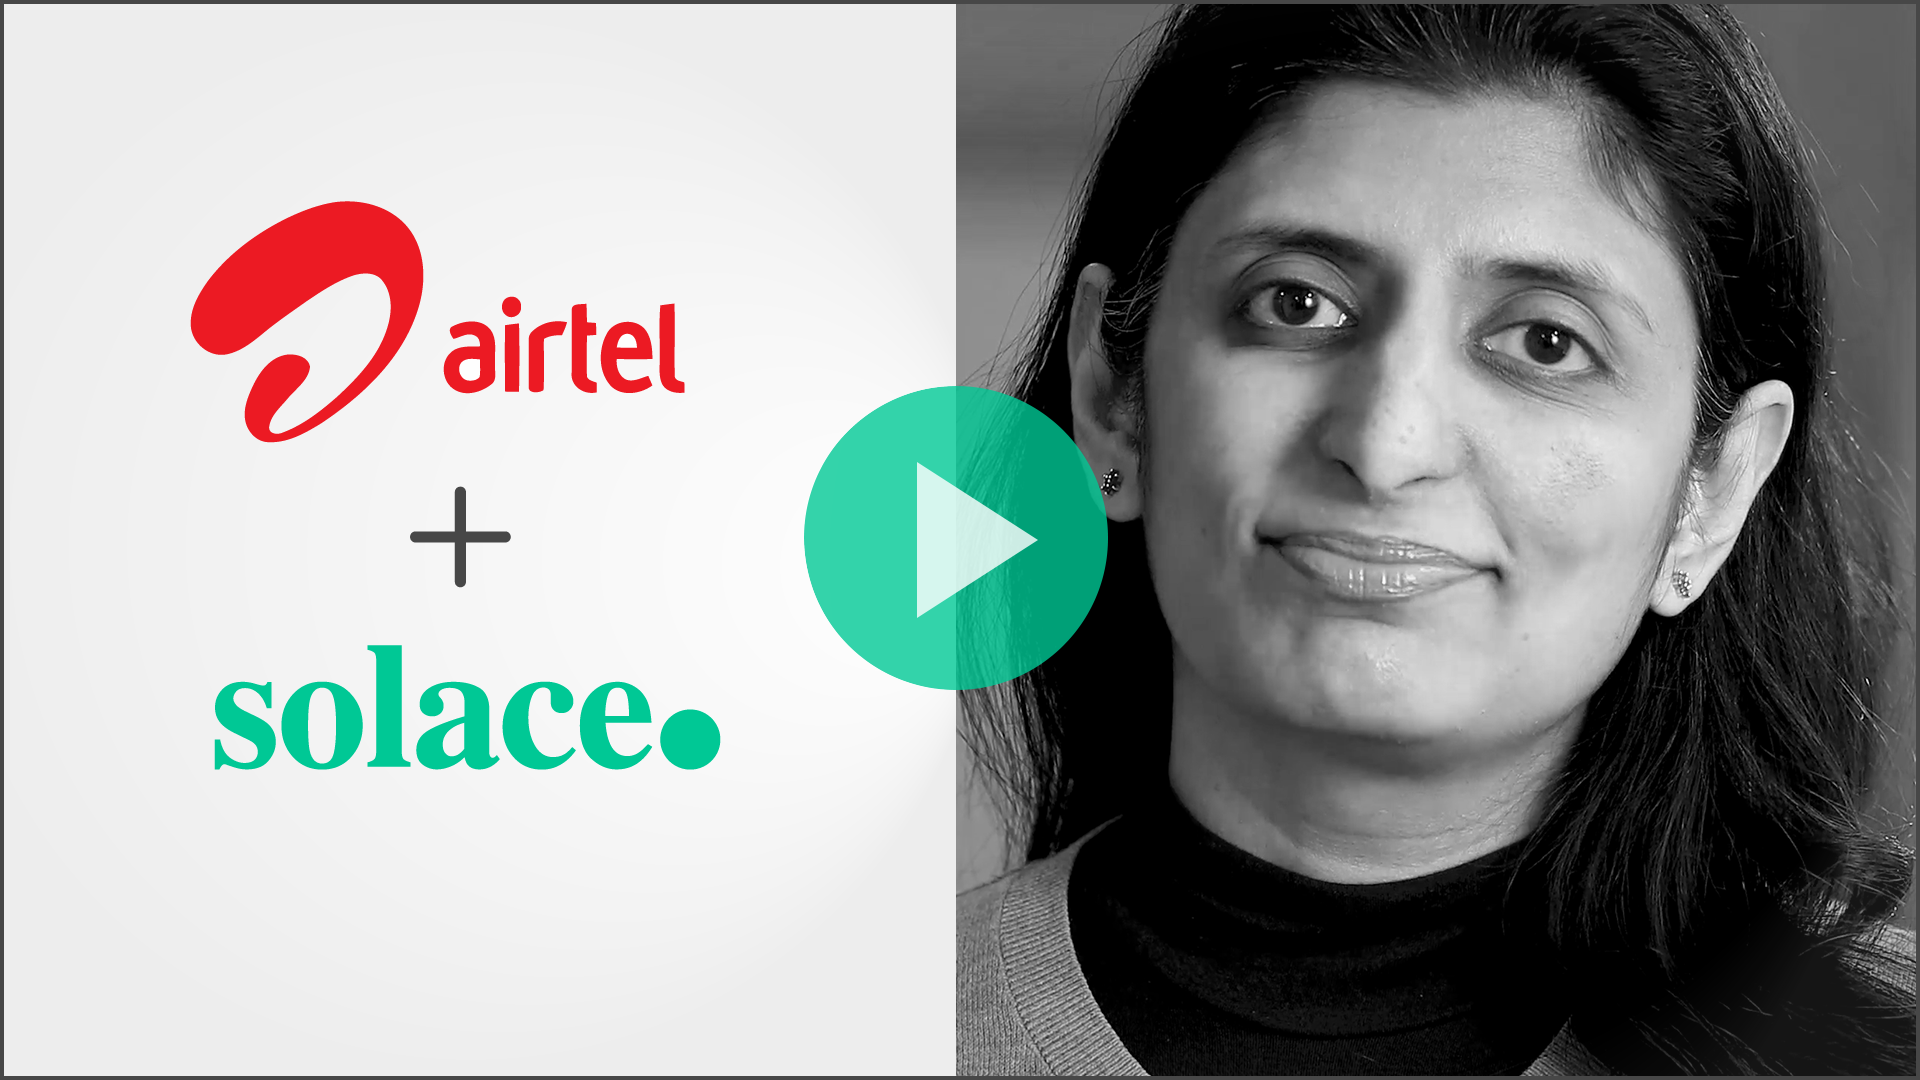 Airtel + Solace